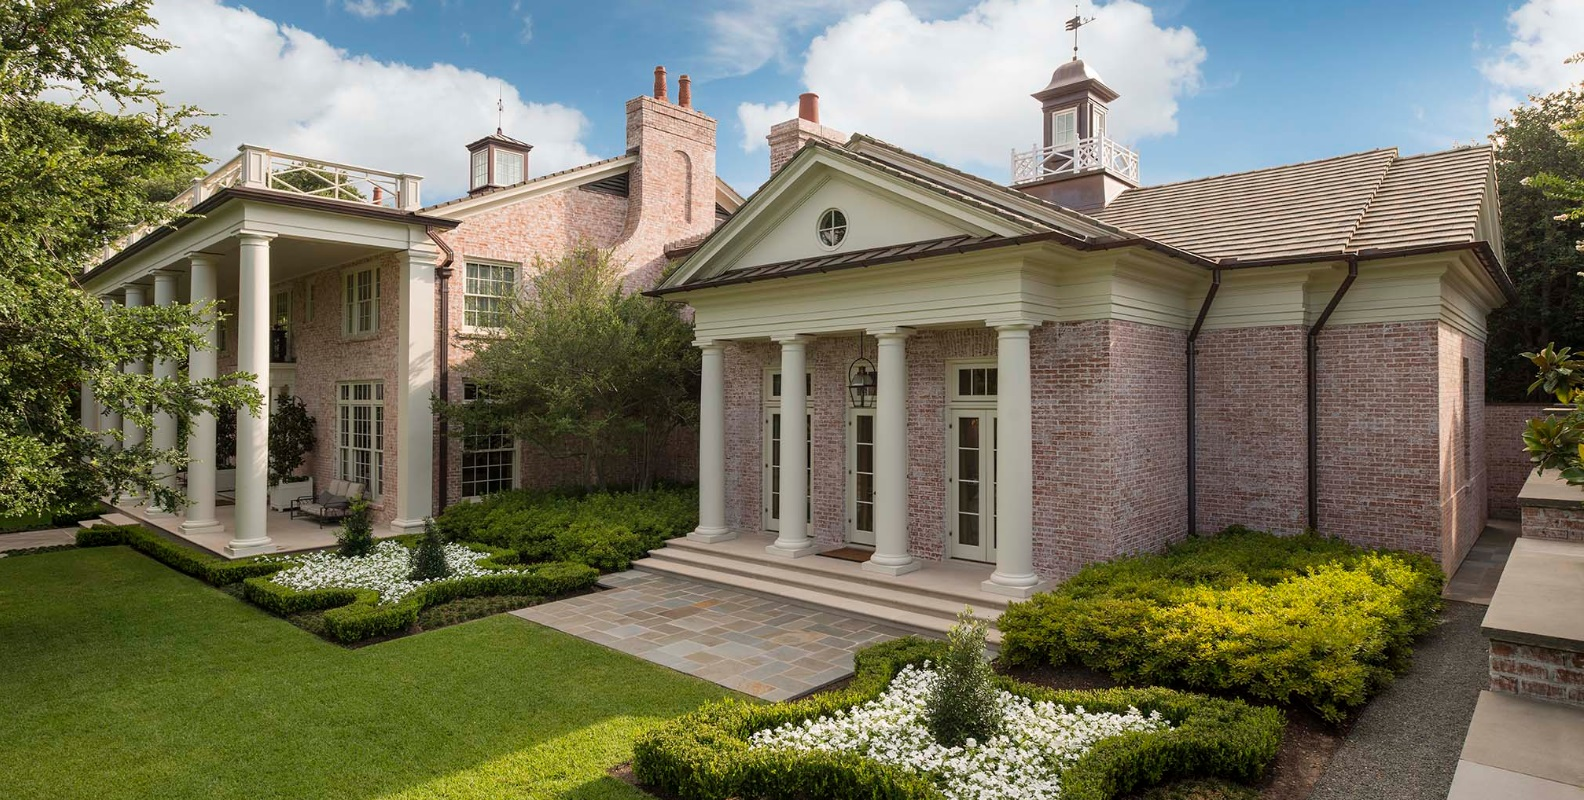 Like many famous Neoclassical buildings, this home by Ralph Duesing in Westover Hills has a large triangular pediment. (This photo is copyright of  Ralph Duesing Architect, LLC . Chambers Interiors & Associates was granted permission to feature this image).